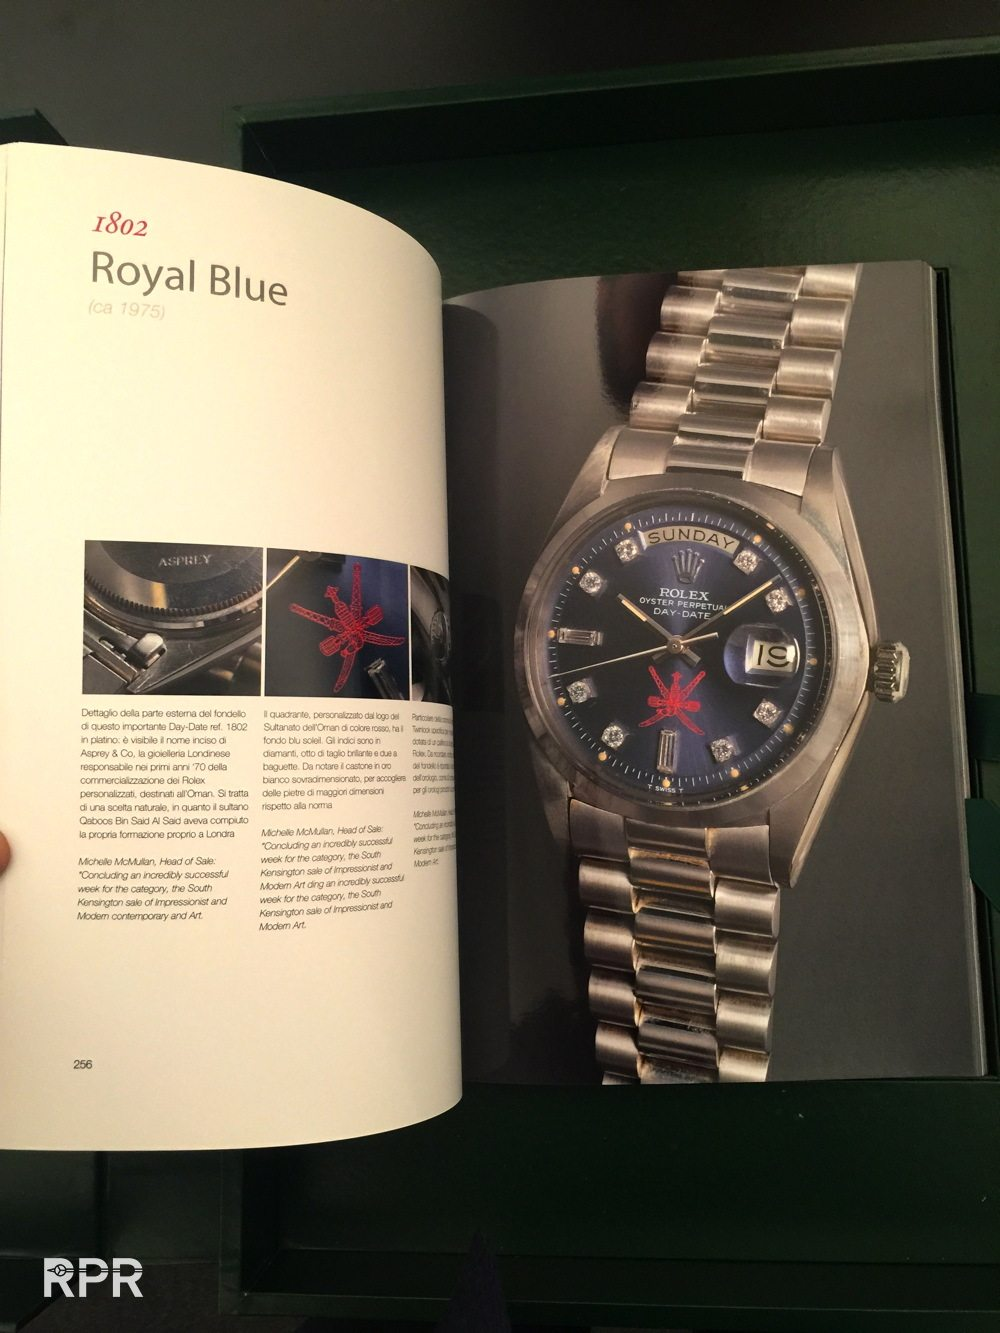 Anni 70 Colori my geneva may 2015 watch auction report - rolex passion report